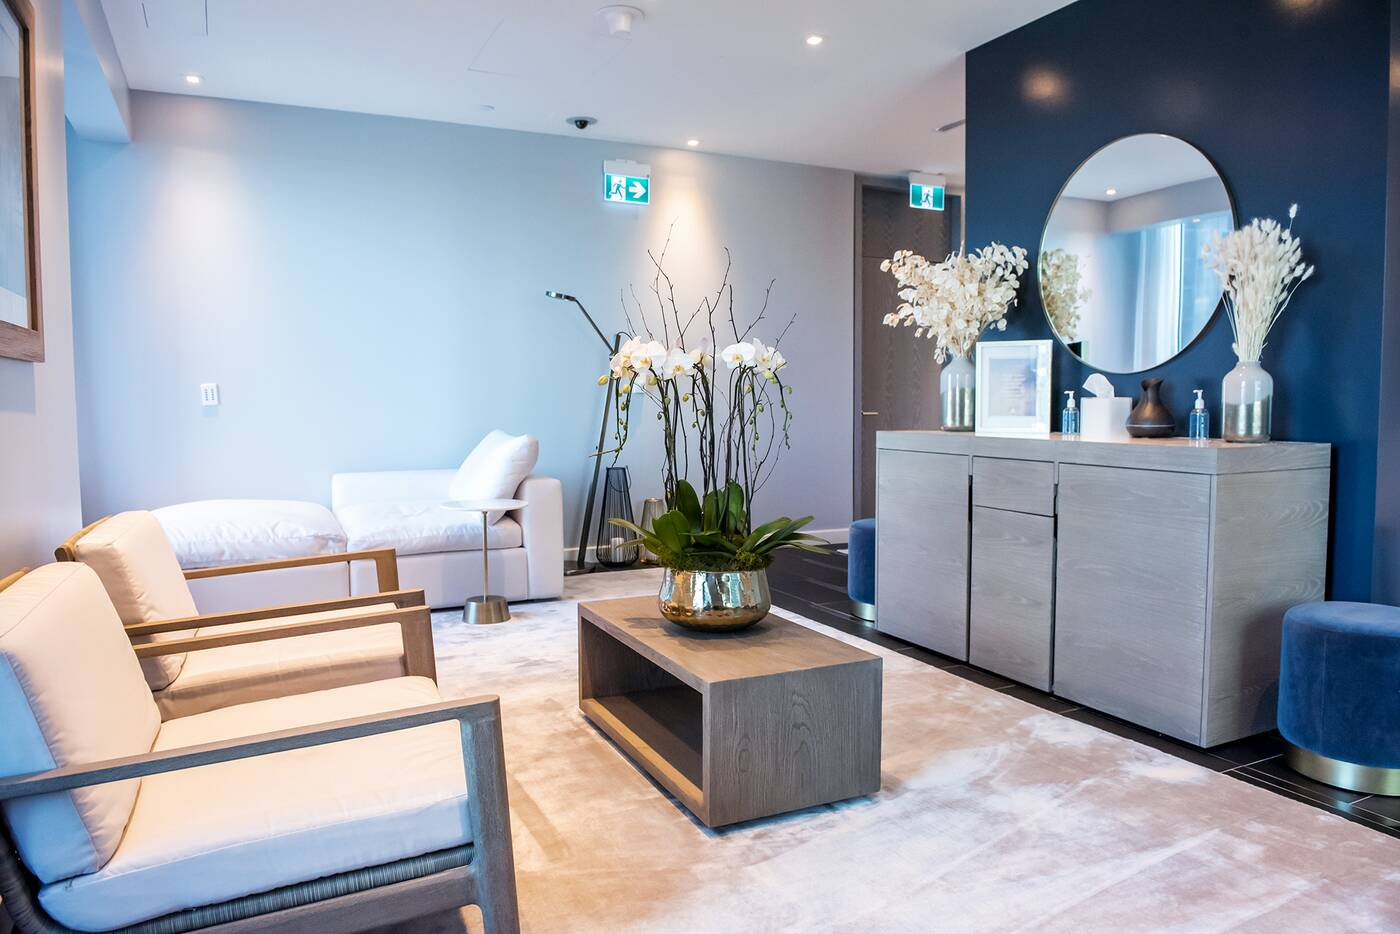 iridium spa toronto